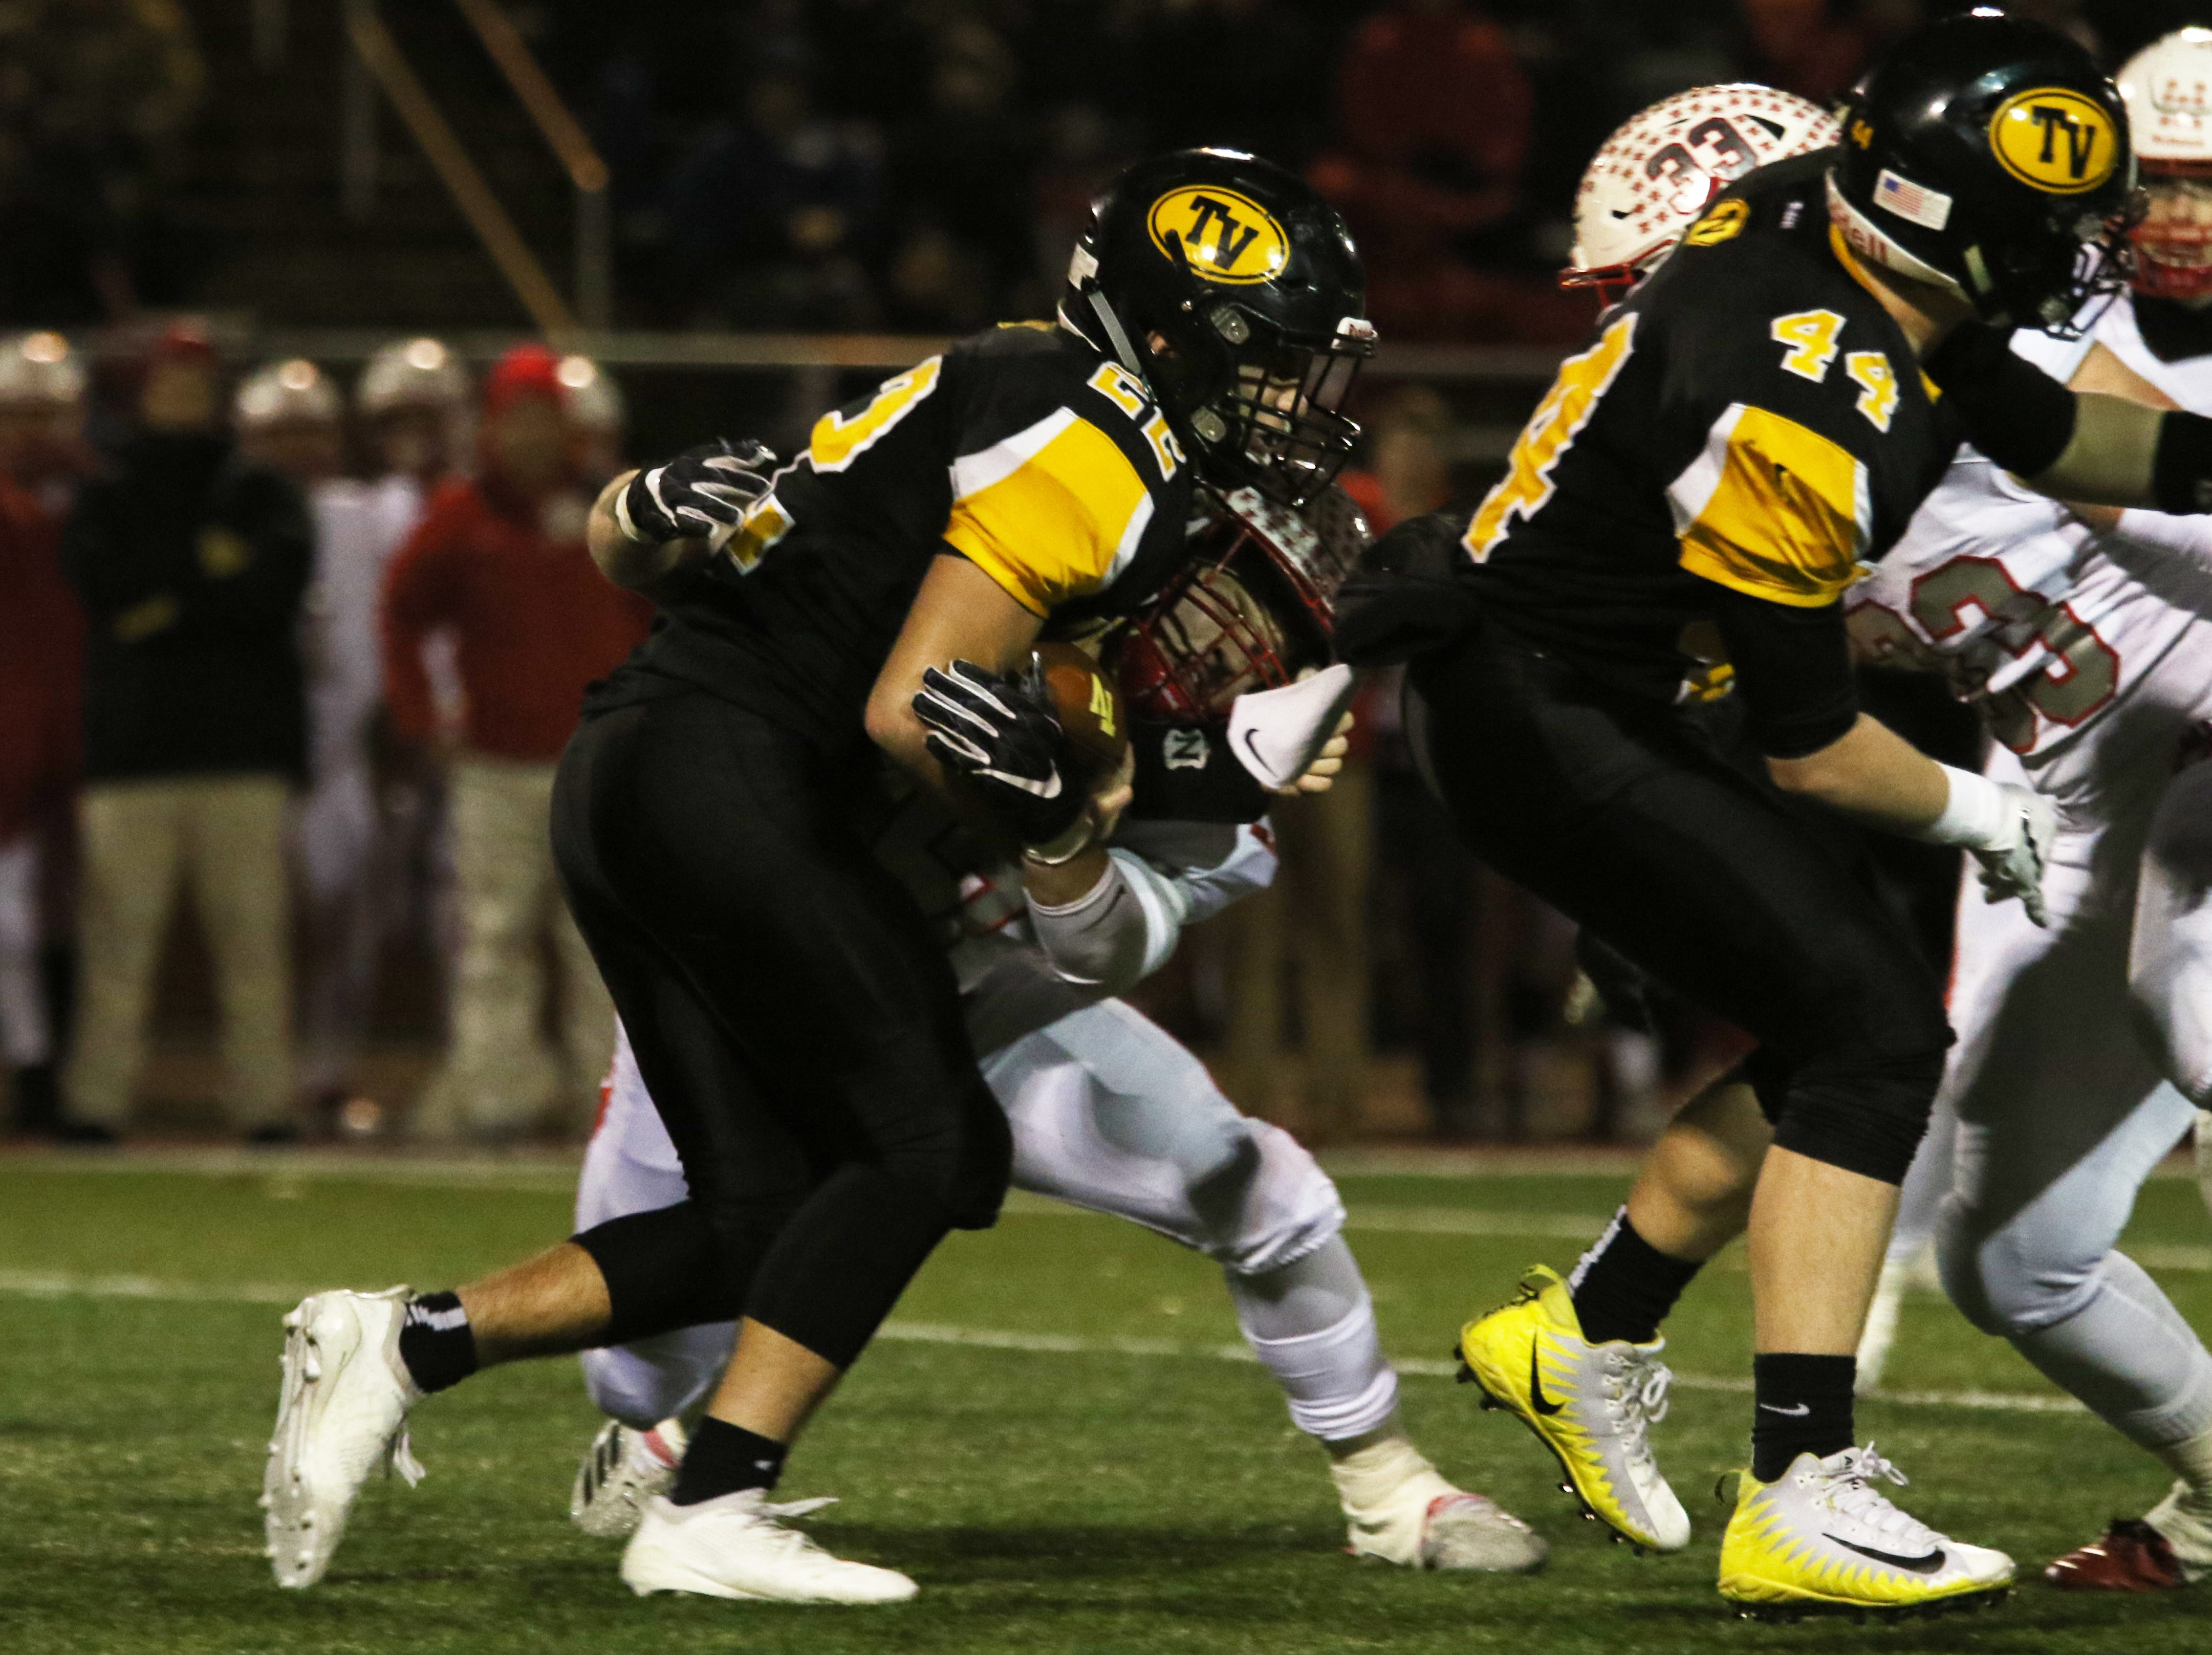 Tri-Valley's Blake Sands carries the ball against Wadsworth.